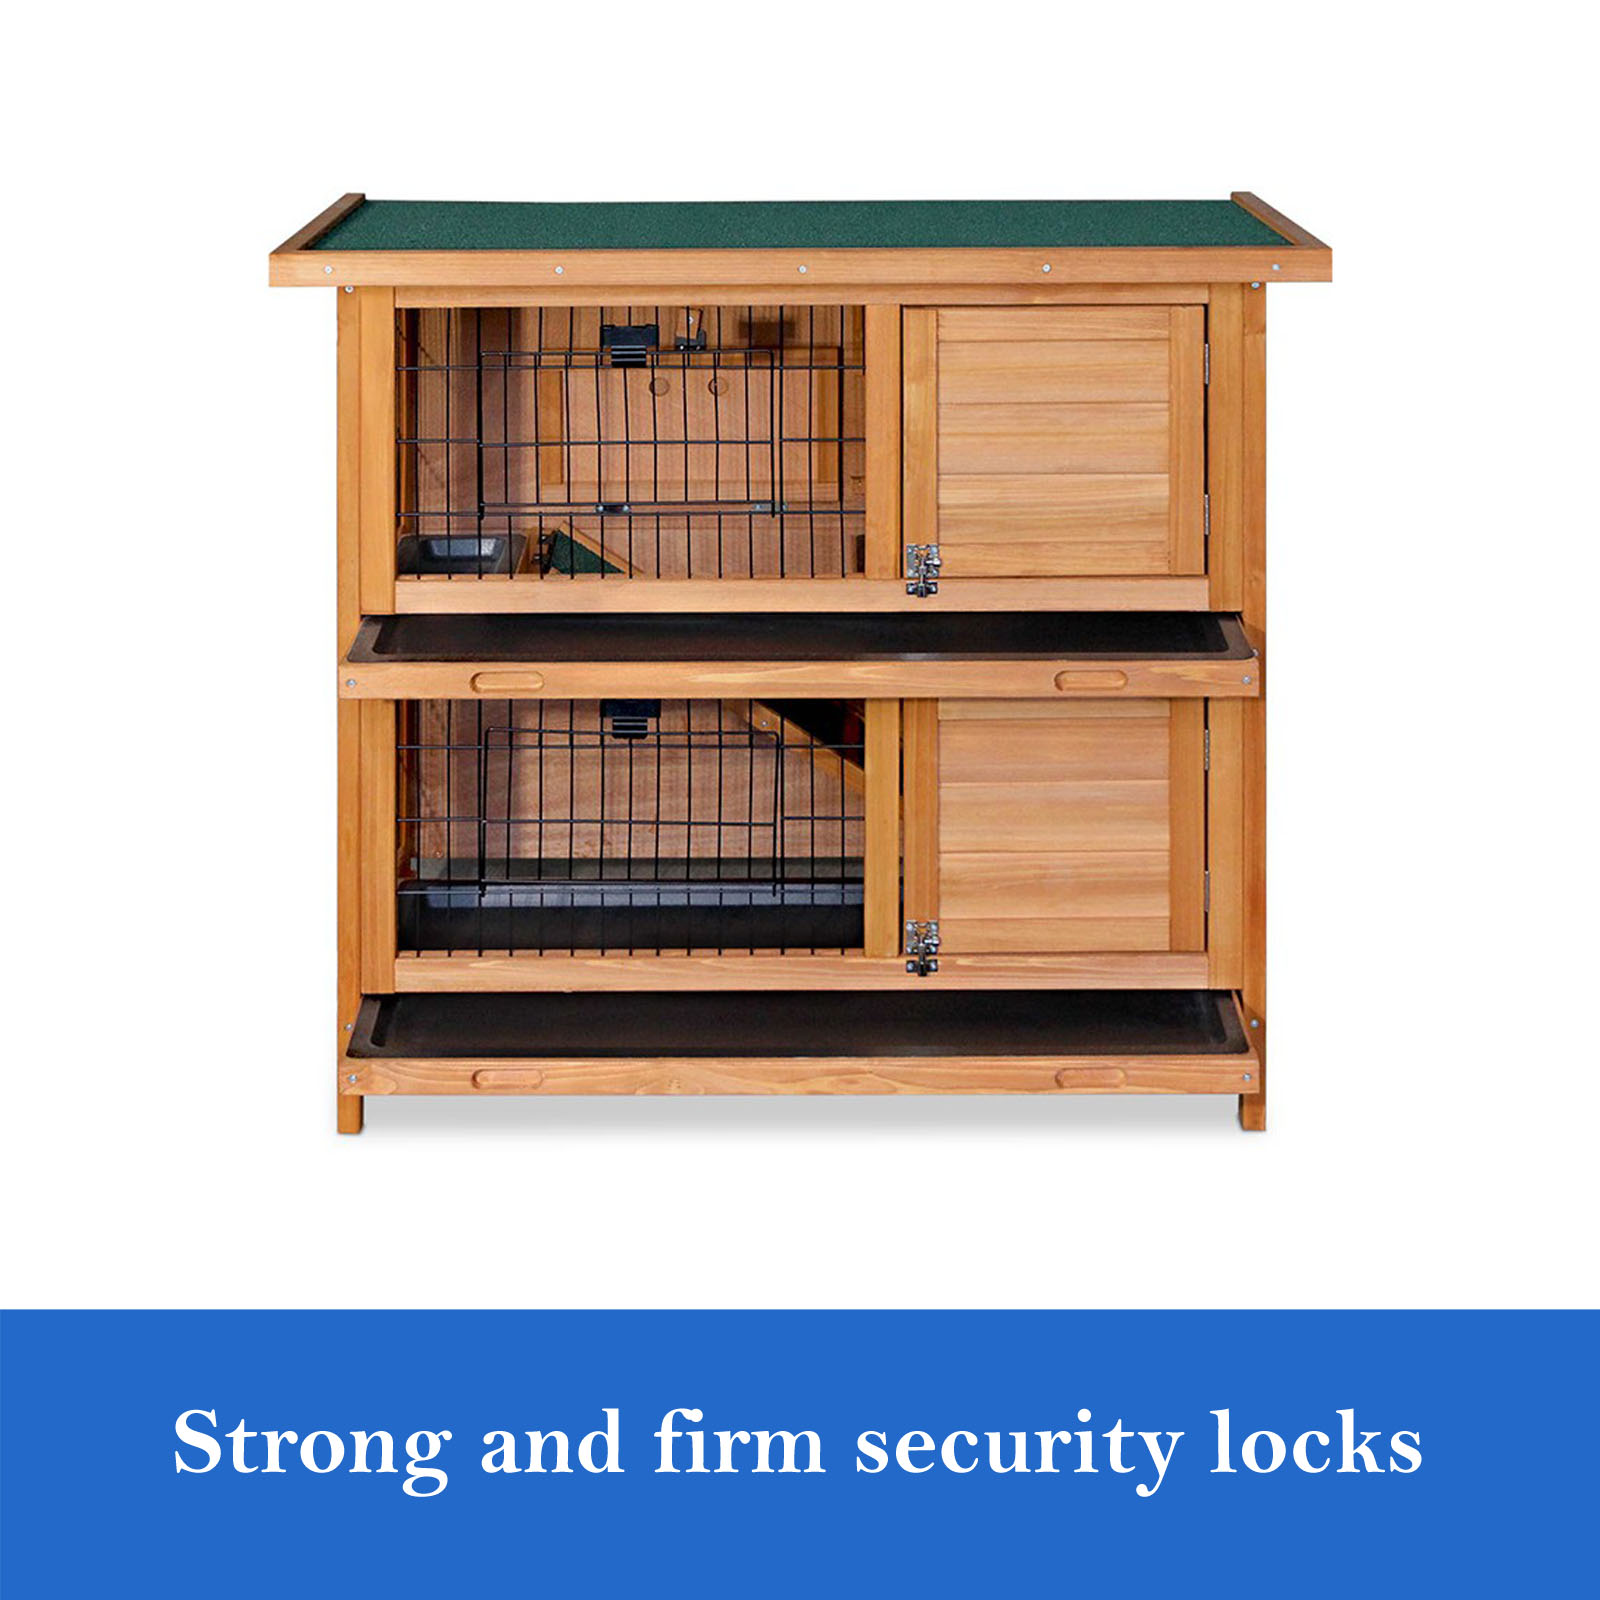 Guinea pig cages picture and images for 2 story guinea pig cages for sale